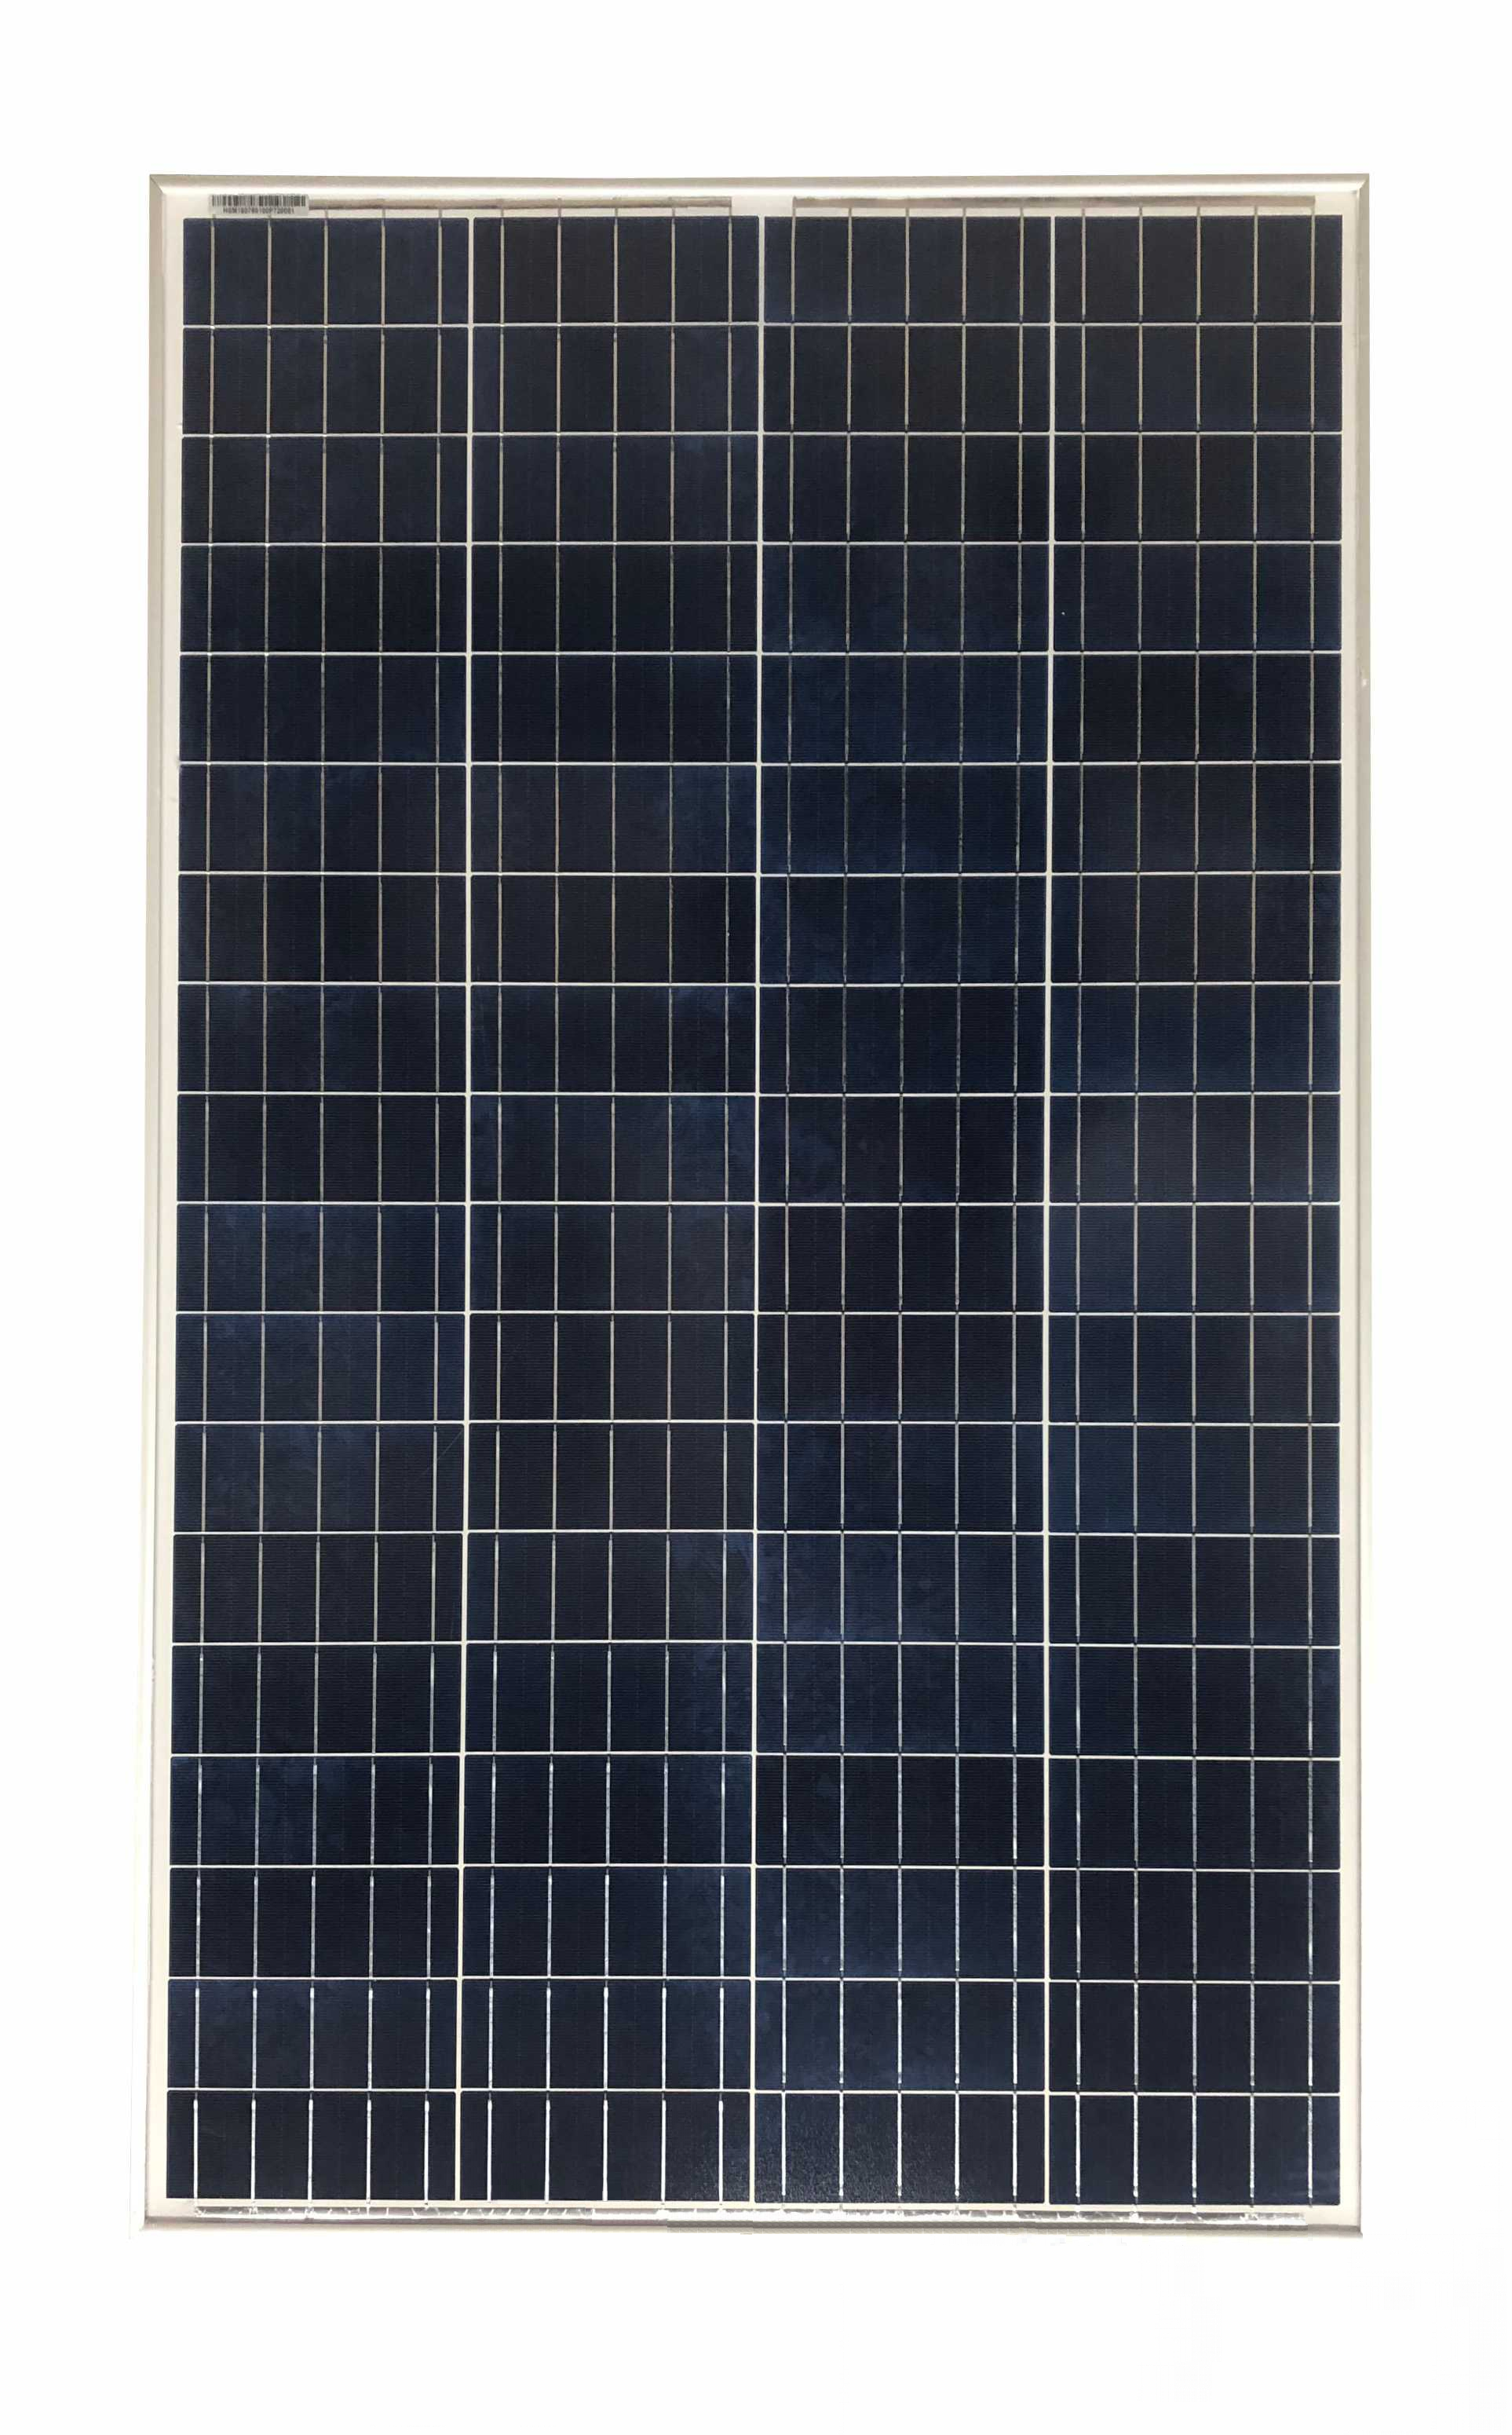 Solárny panel Victron Energy 100Wp/12V